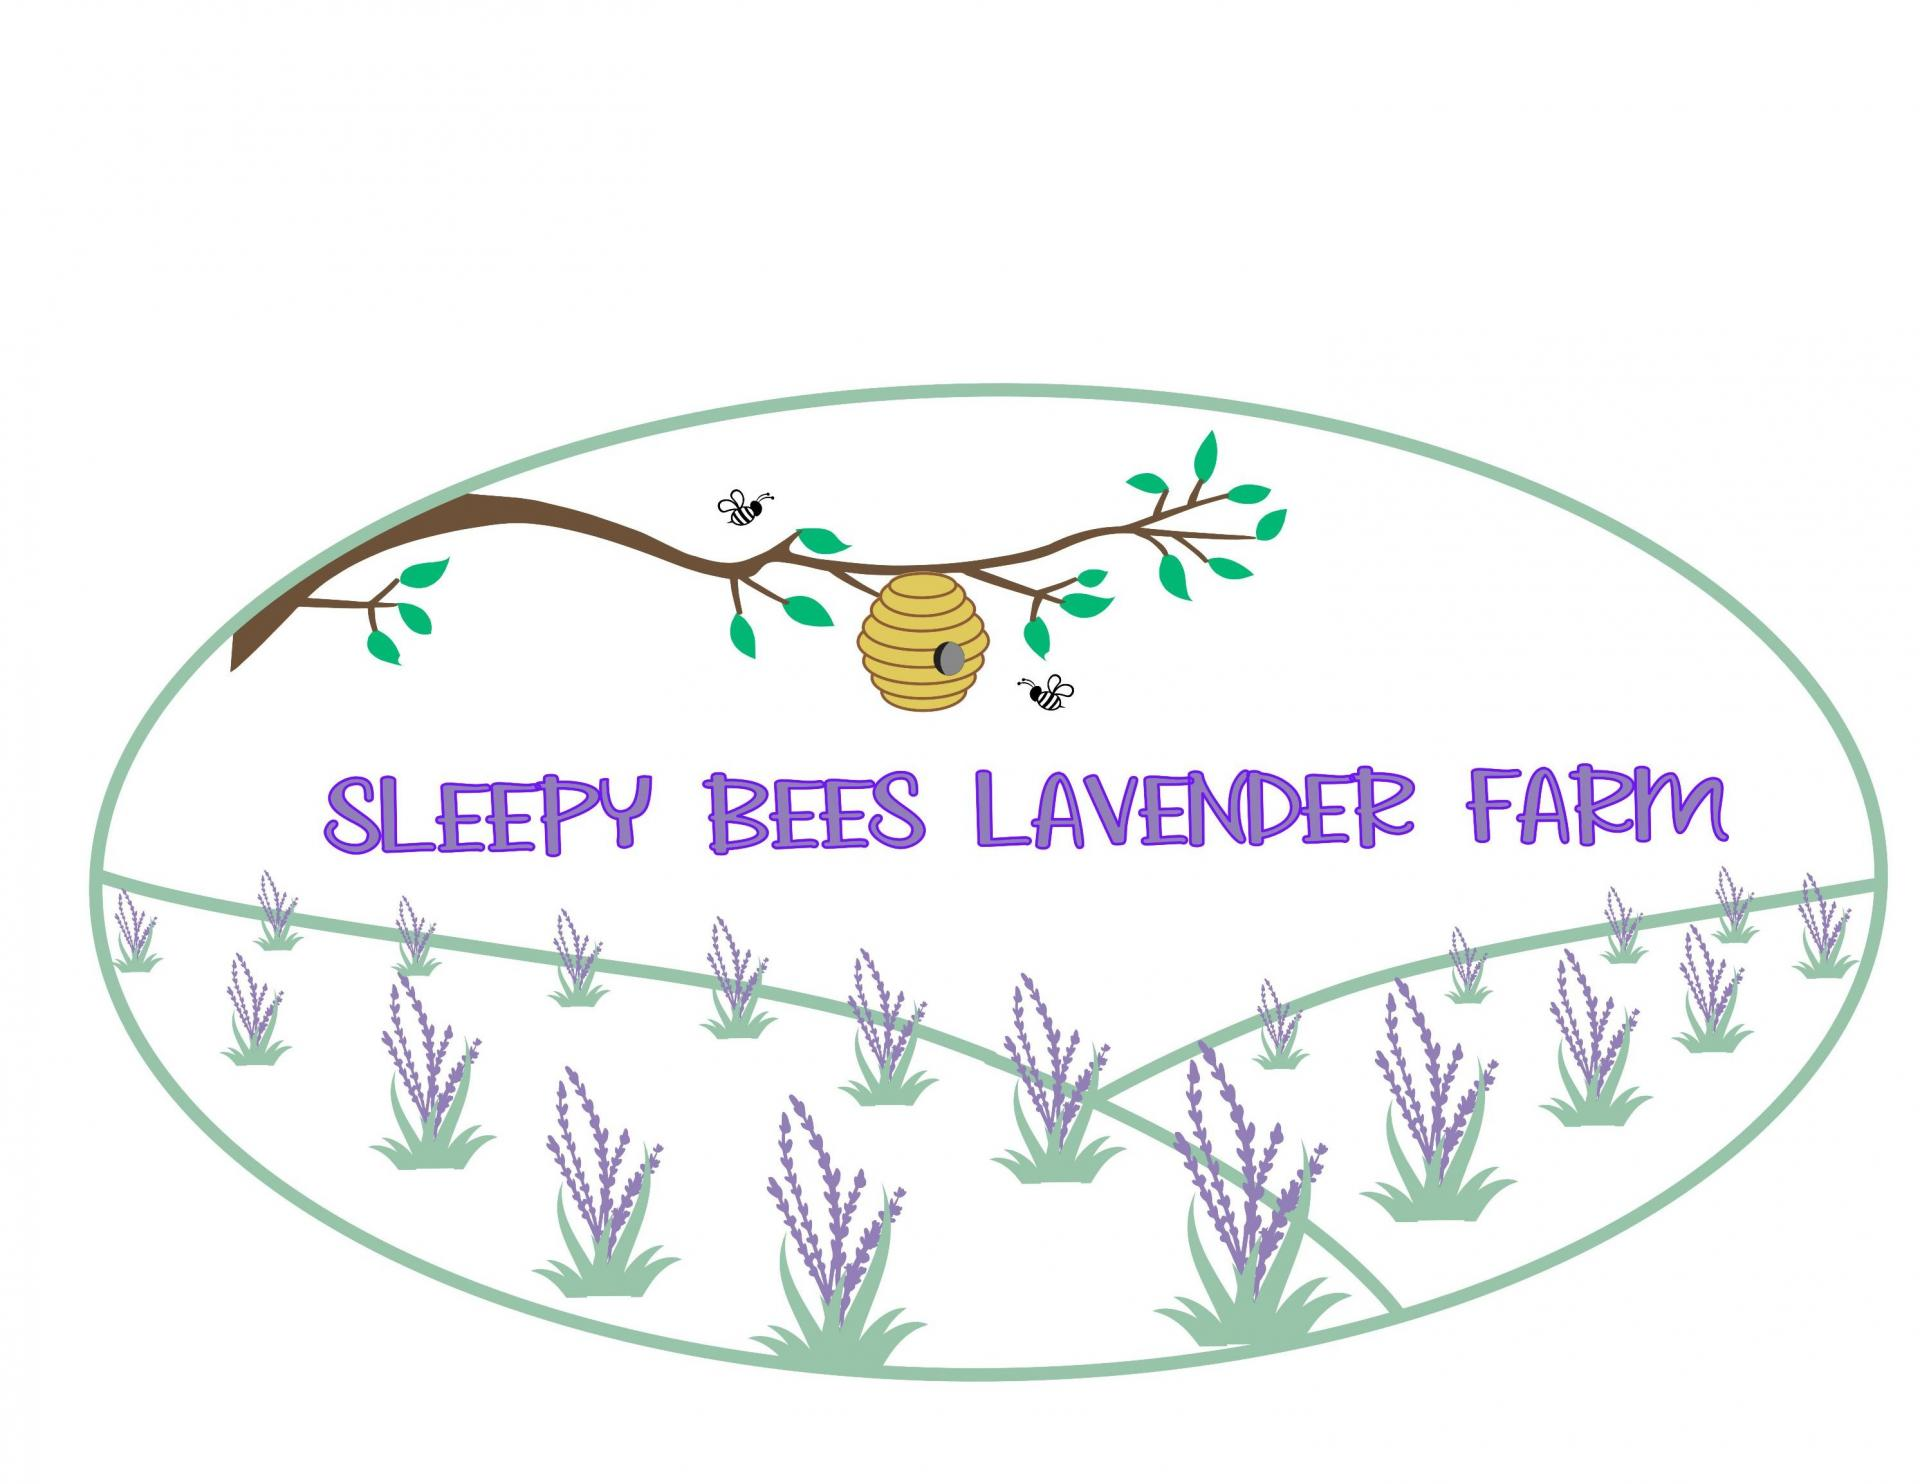 Sleepy Bees Lavender Farm Logo